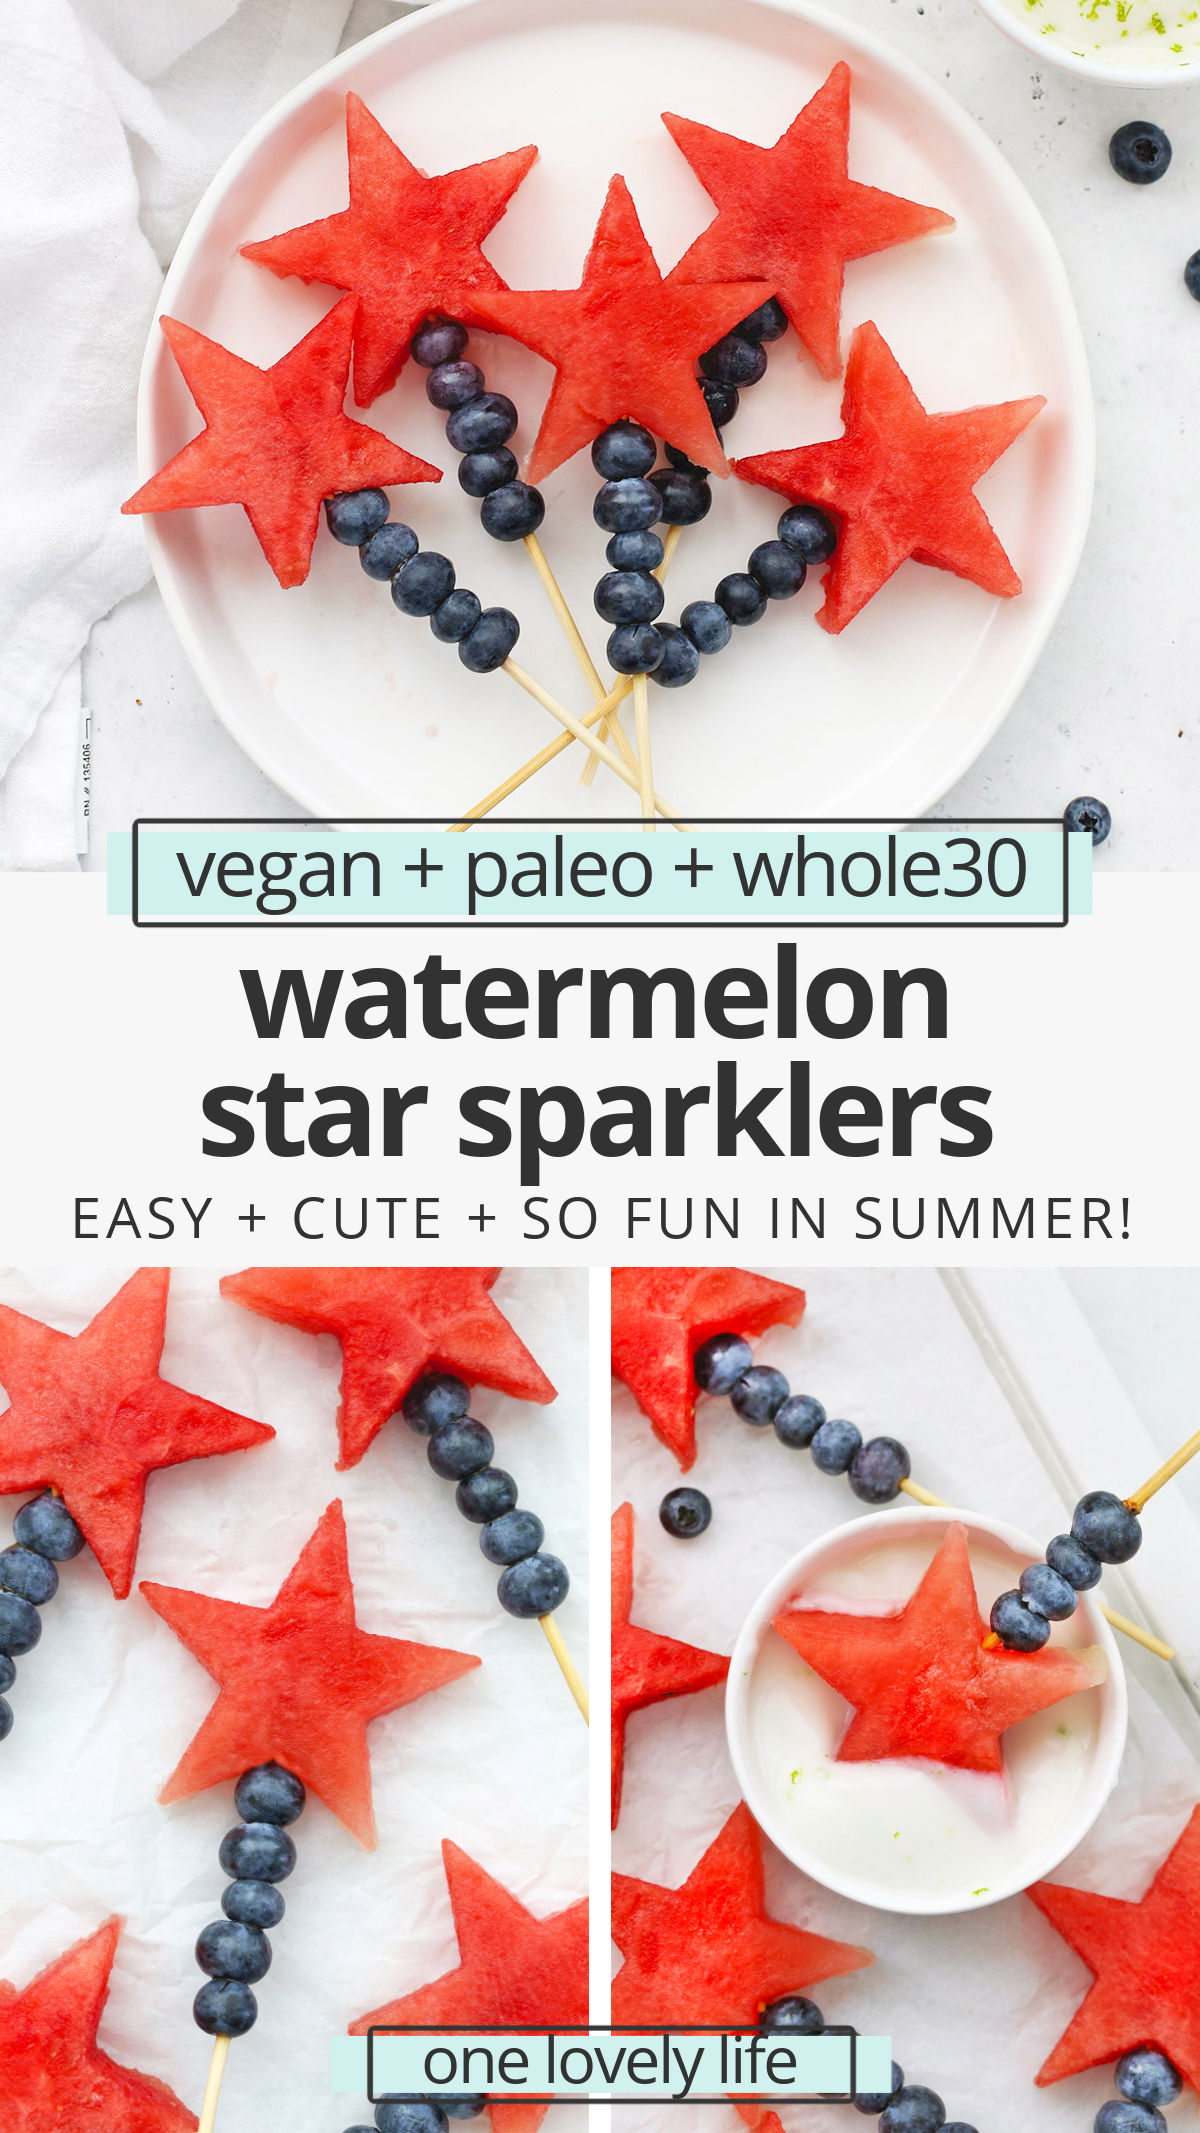 Watermelon Star Sparklers - Watermelon stars and blueberries combine to make these fun, patriotic fruit sparklers. They're a perfect, easy snack or summer side dish. (Naturally Paleo, Vegan & Gluten-Free) // Patriotic Fruit Skewers // 4th of July Side Dish // Red White and Blue Recipes #snack #4thofjuly #summerrecipe #sidedish #fruit #healthysnack